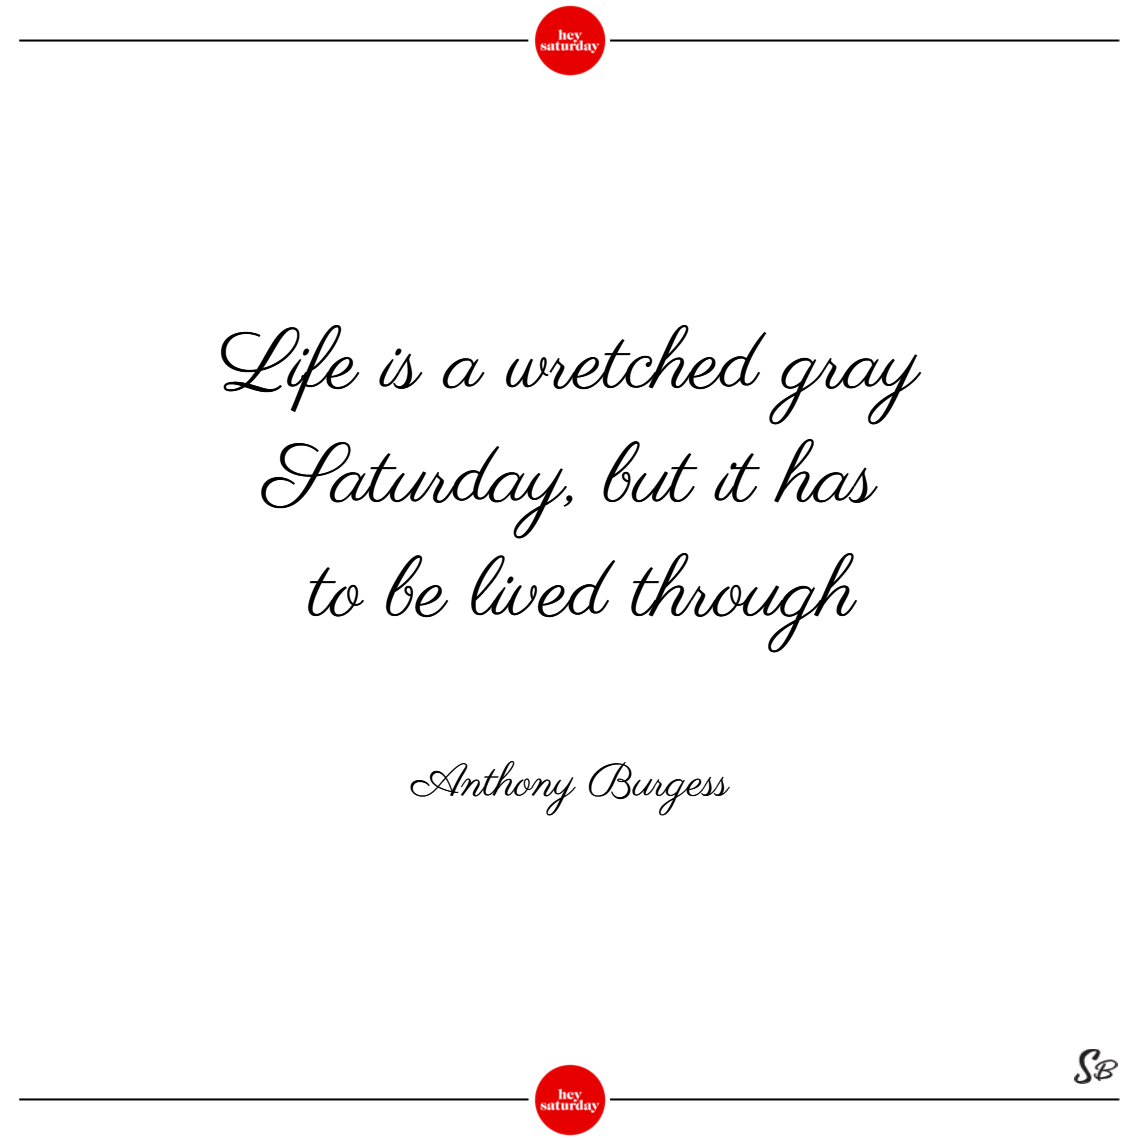 Life is a wretched gray saturday, but it has to be lived through. – anthony burgess